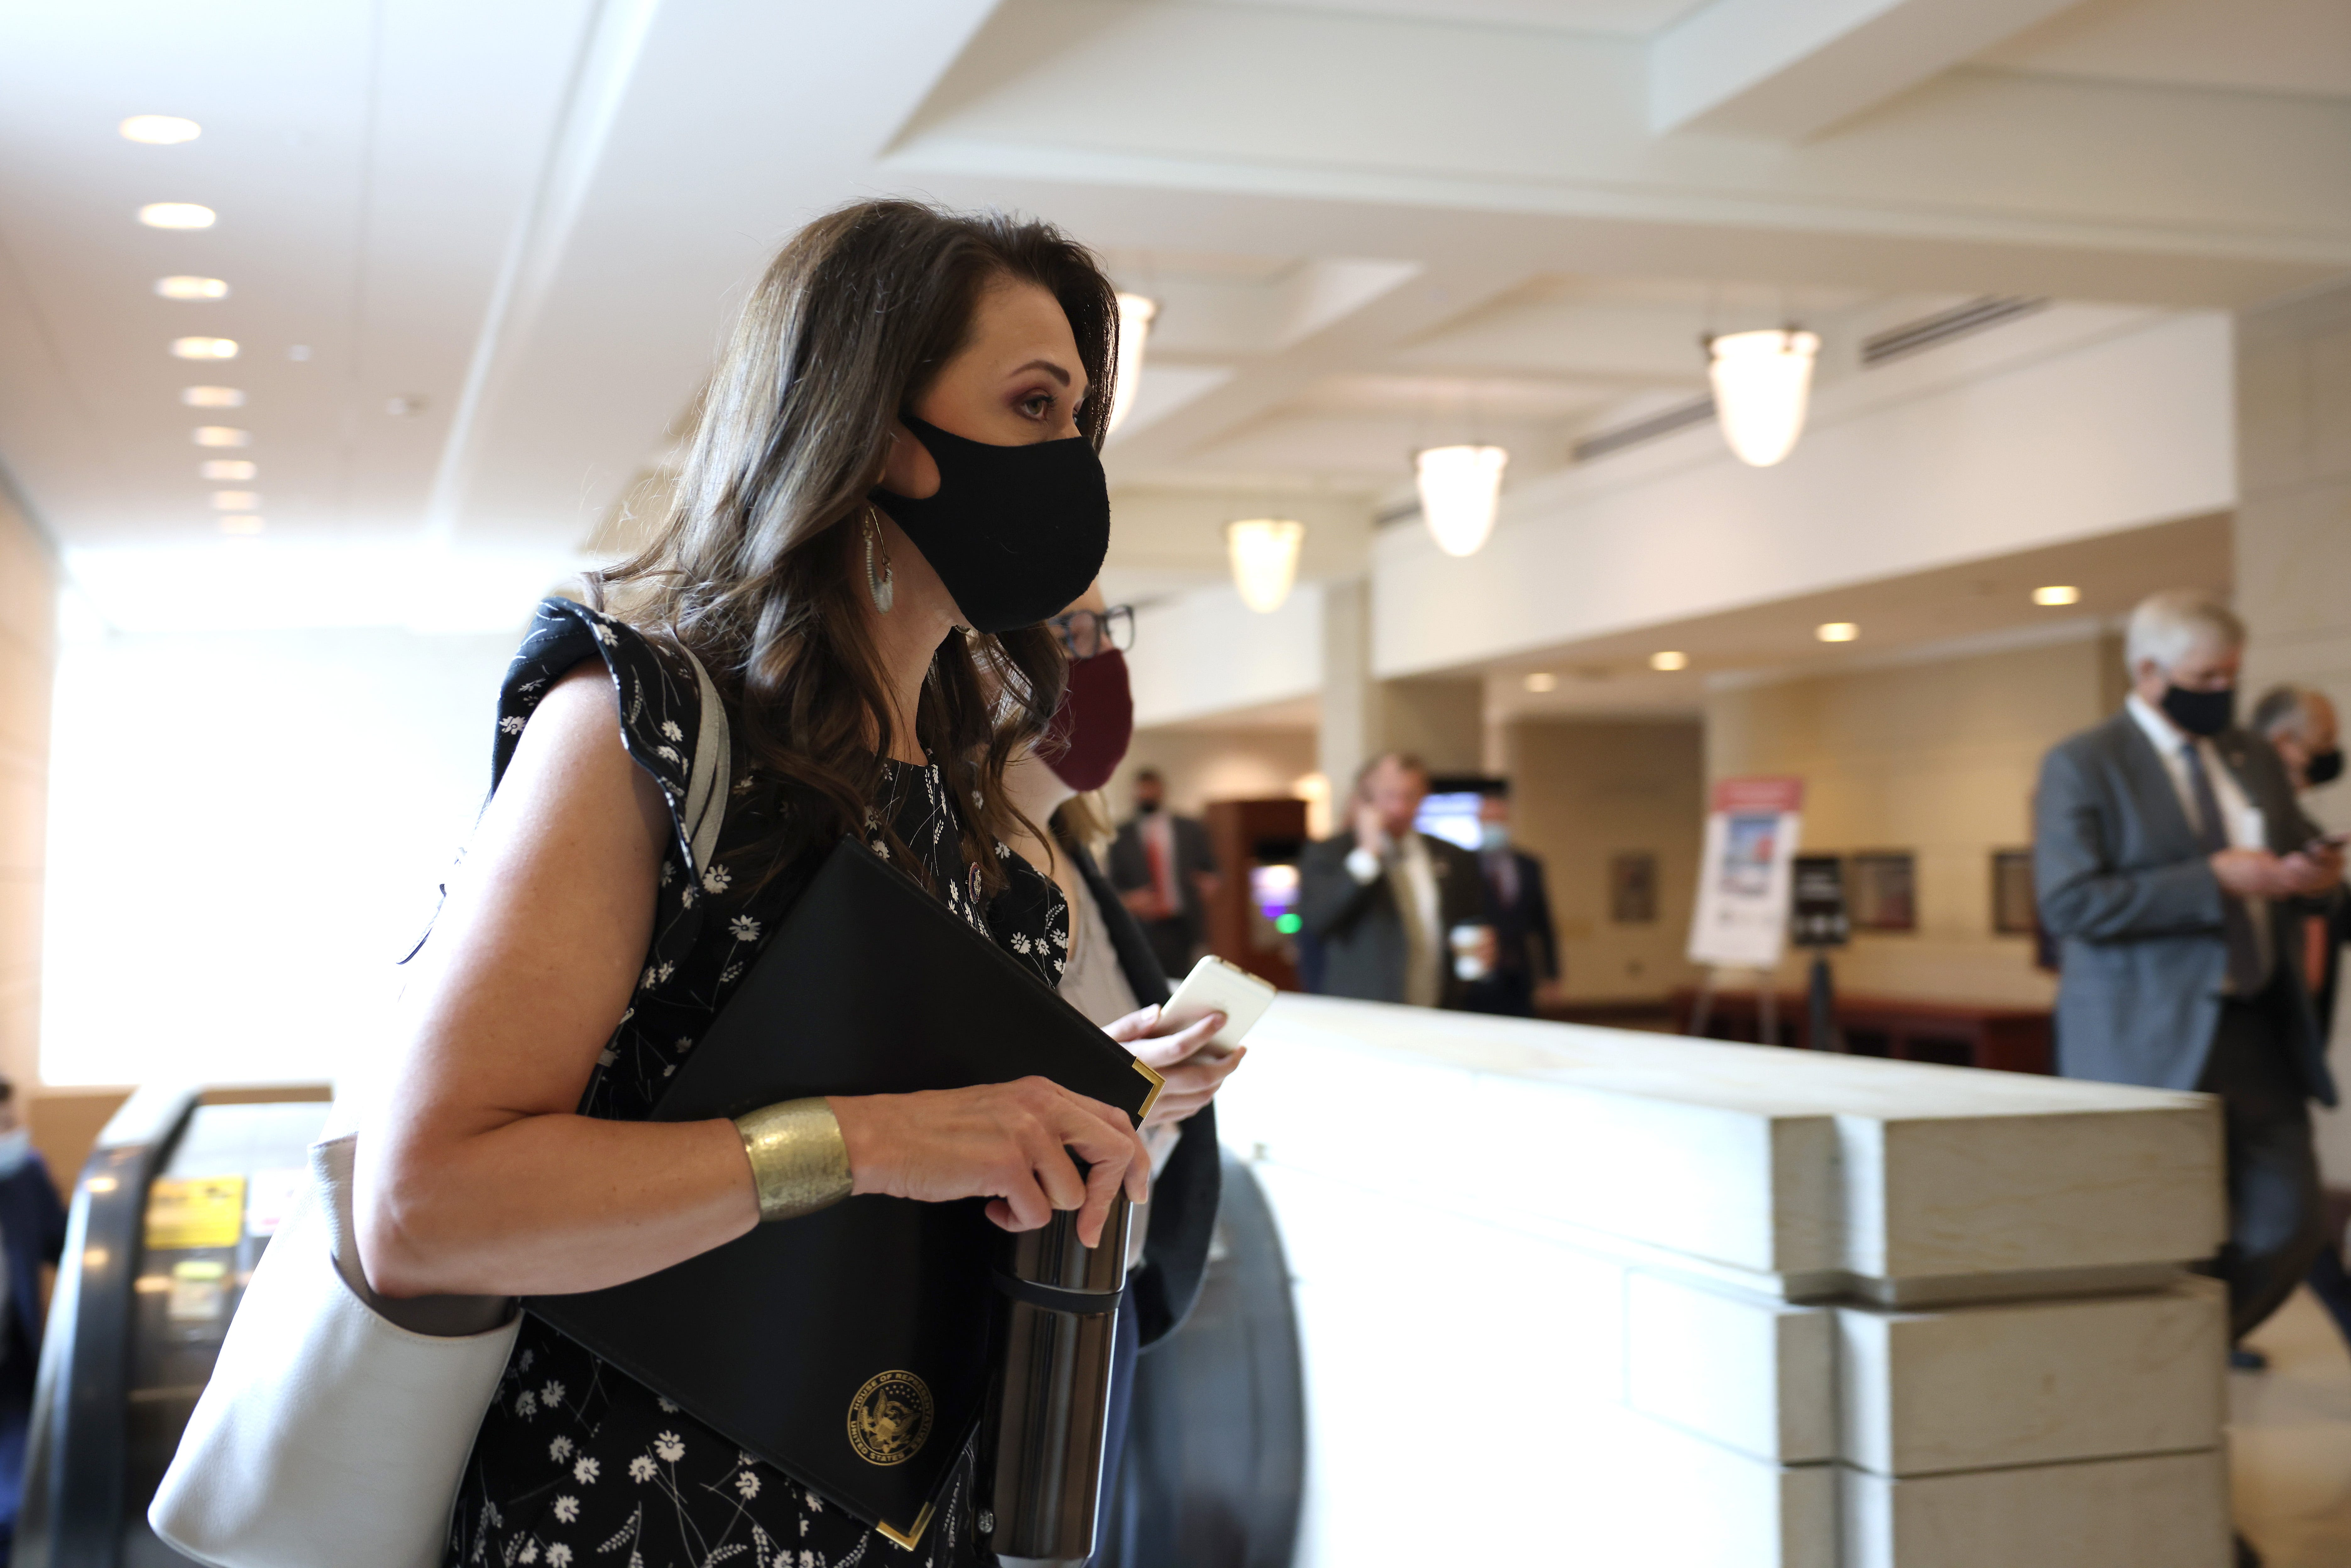 Rep. Jaime Herrera Beutler, R-Wash., leaves a Republican House caucus meeting where the Republicans voted to remote Conference Chair Rep. Liz Cheney, R-Wyo., of her leadership role on Wednesday.